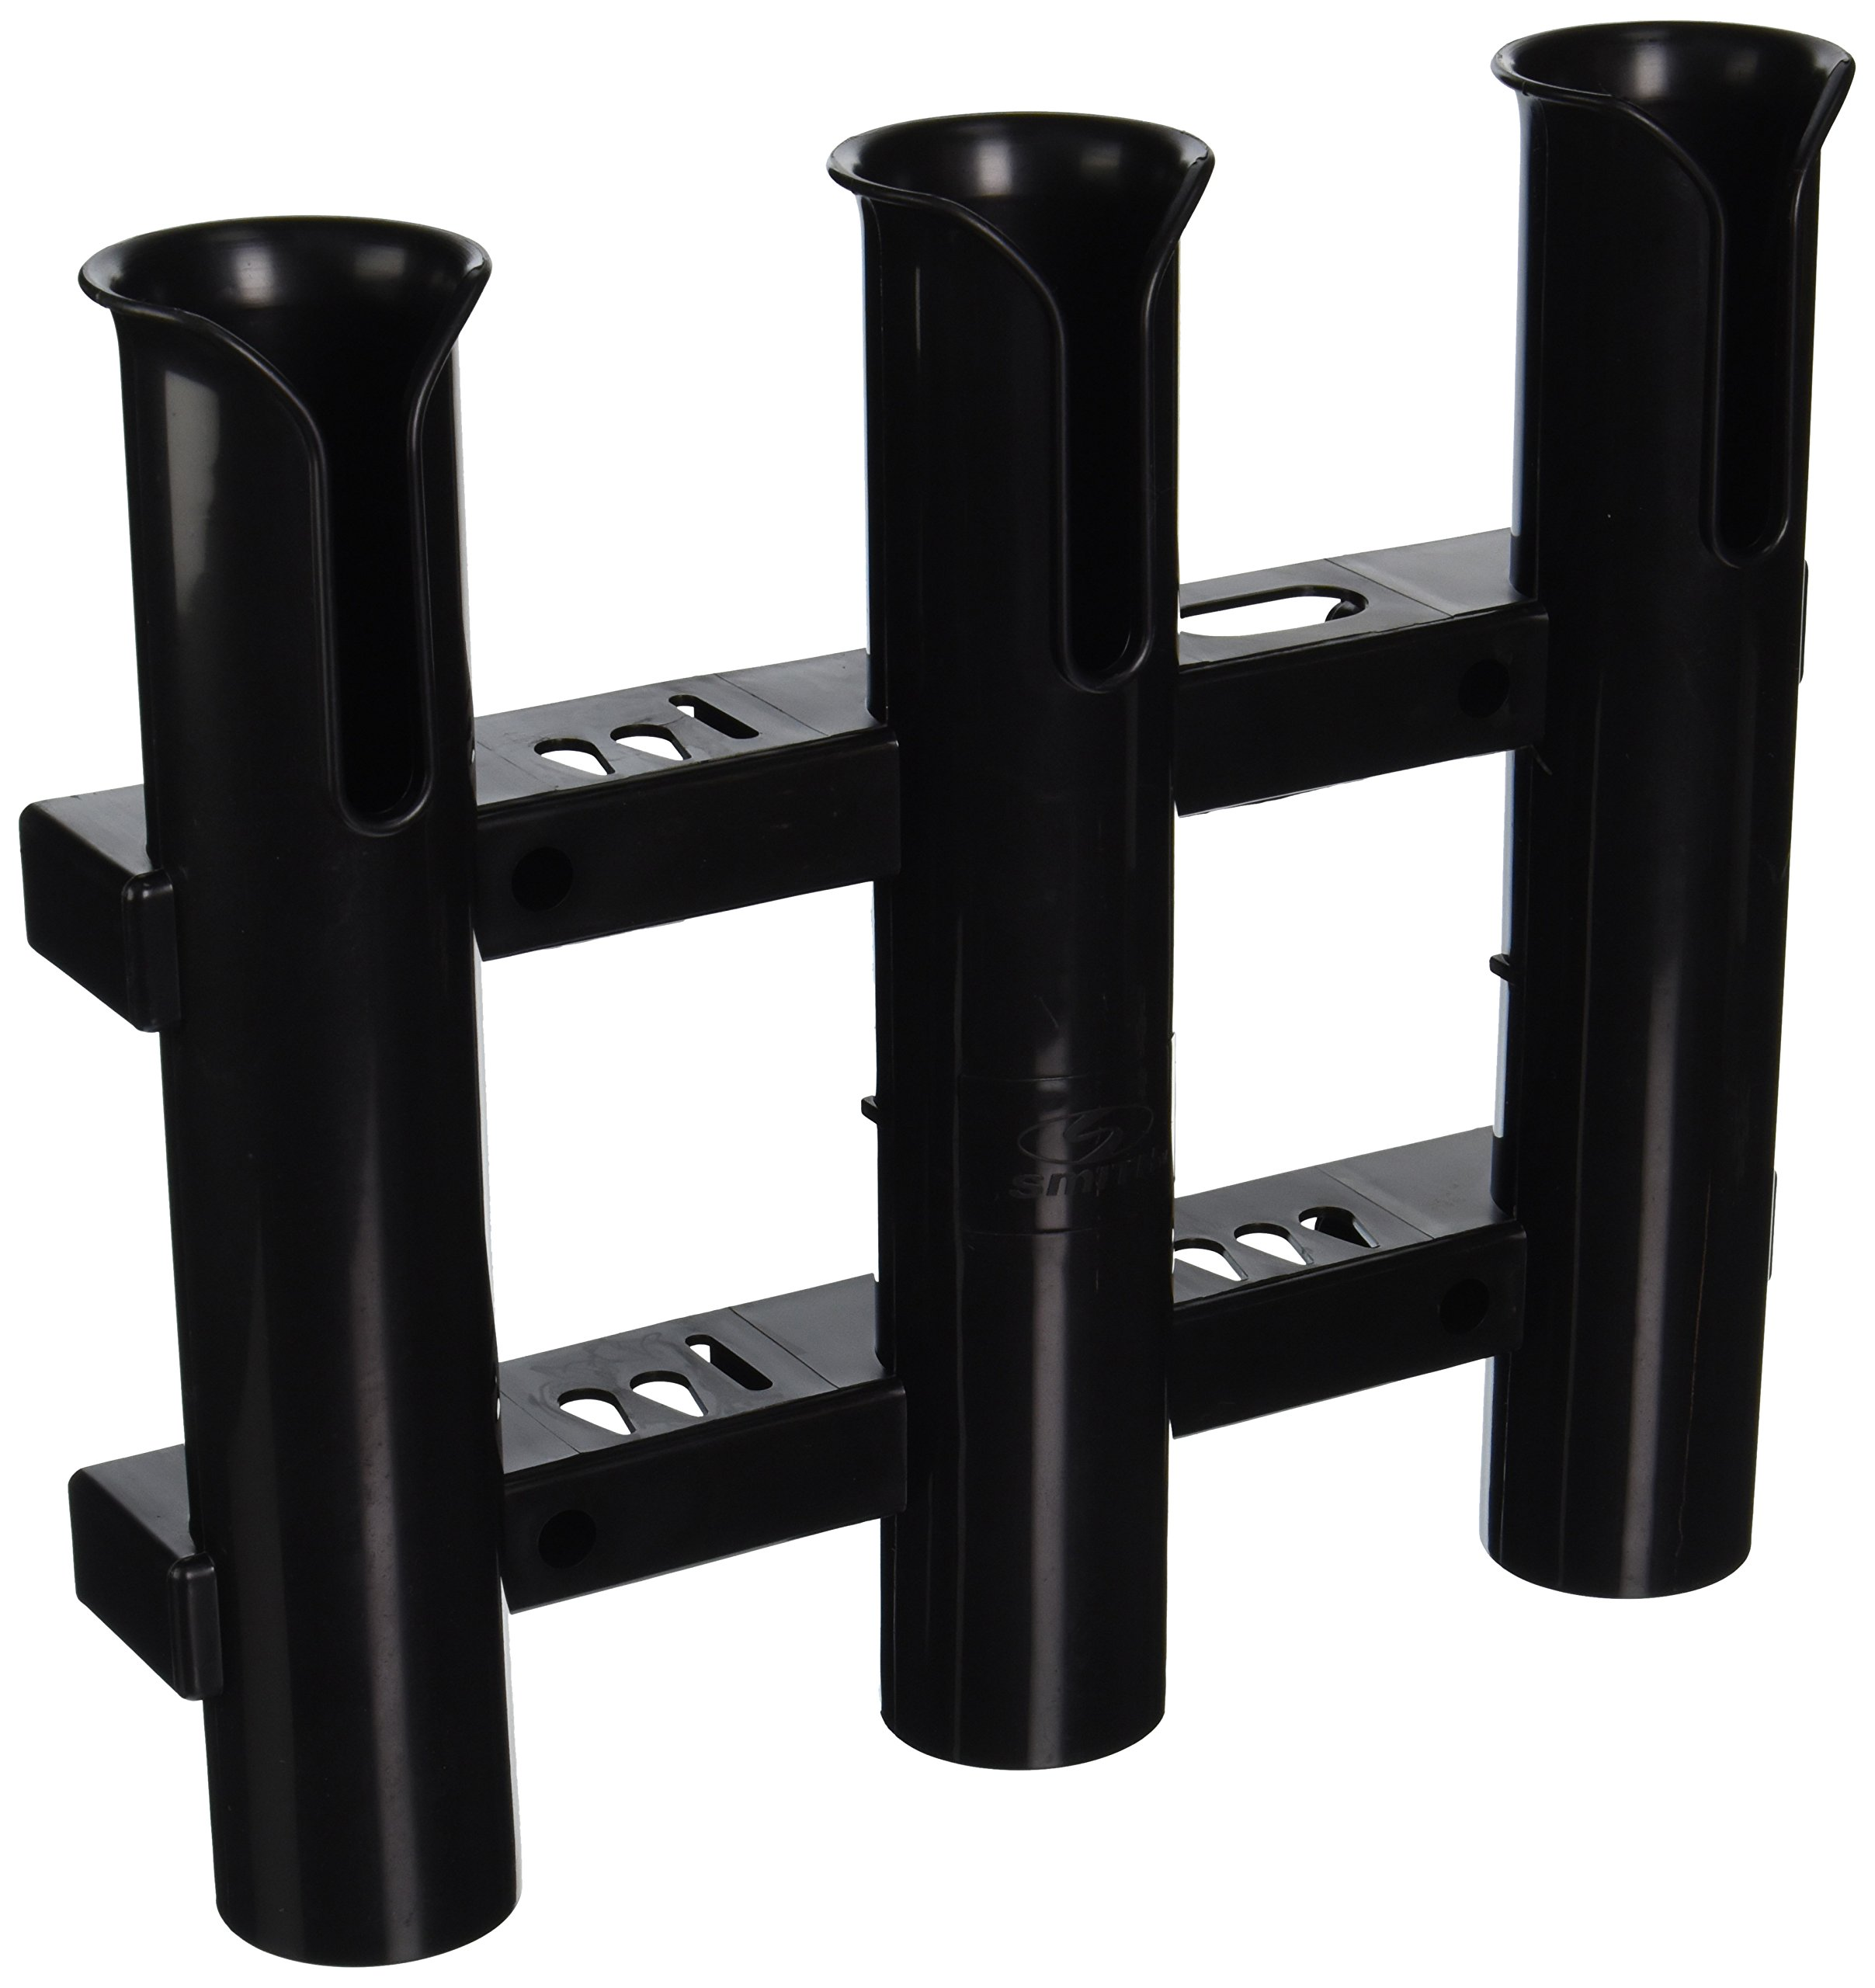 CE Smith Tournament 3 Rack Rod Holder, Black-Replacement Parts and Accessories for Tournament Fishing, Rod Fishing, Deep Sea Fishing and Trolling by CE Smith